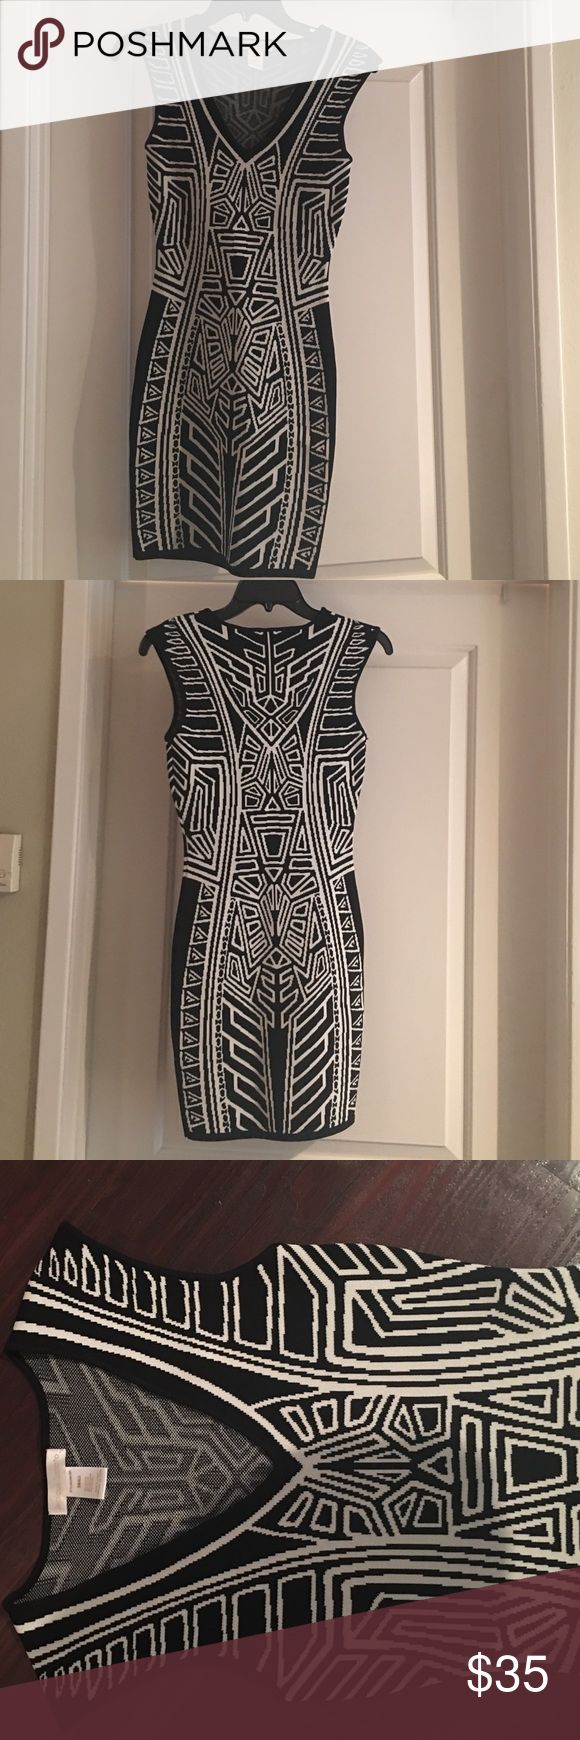 NWOT black and white bodycon dress! NWOT black and white bodycon dress! Amazing fit and stretchy material hugs you in the right ways! Dresses Mini